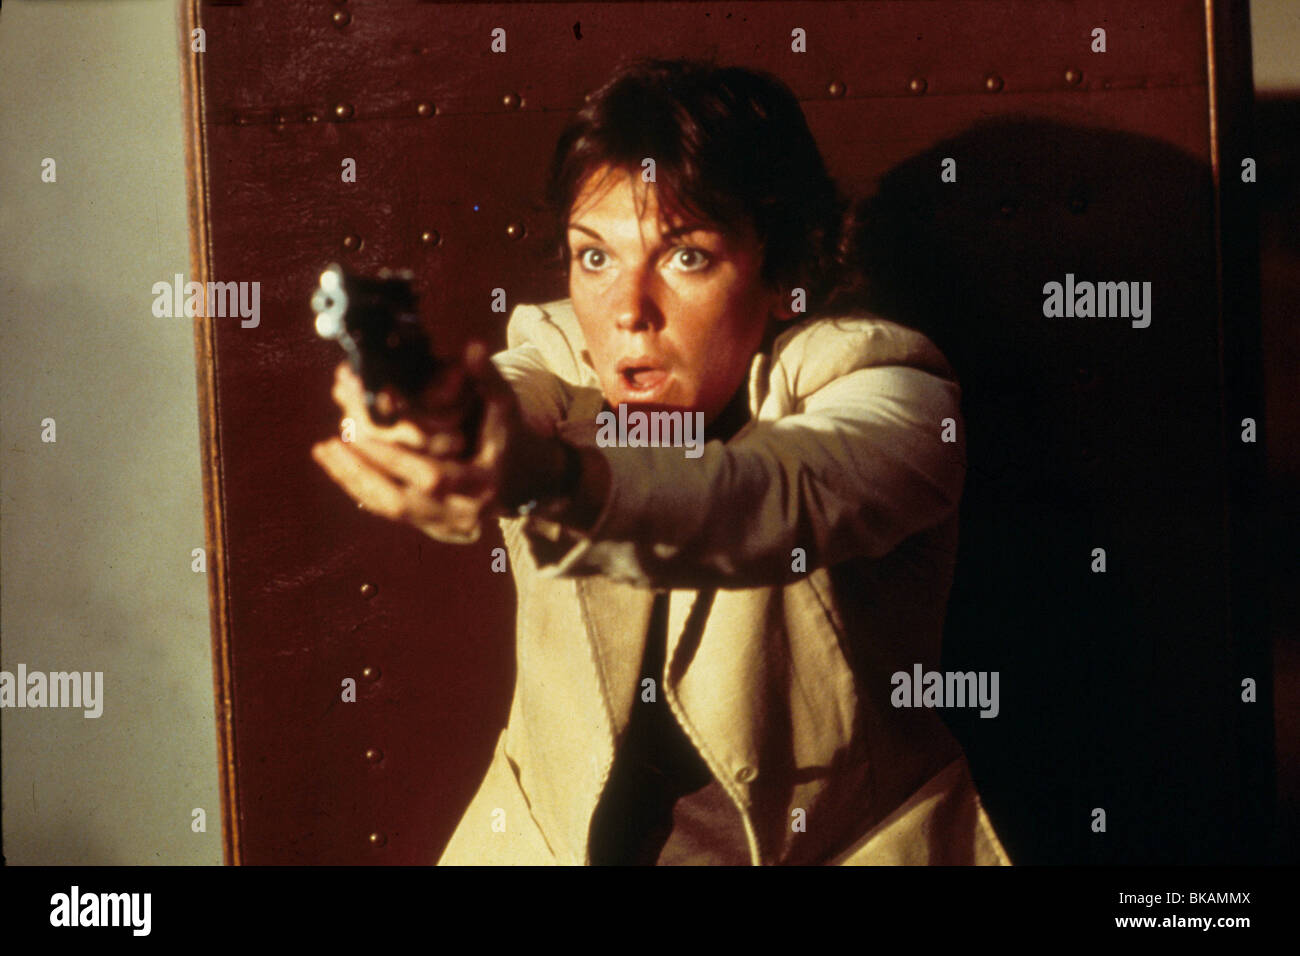 THE ENFORCER -1976 TYNE DALY - Stock Image